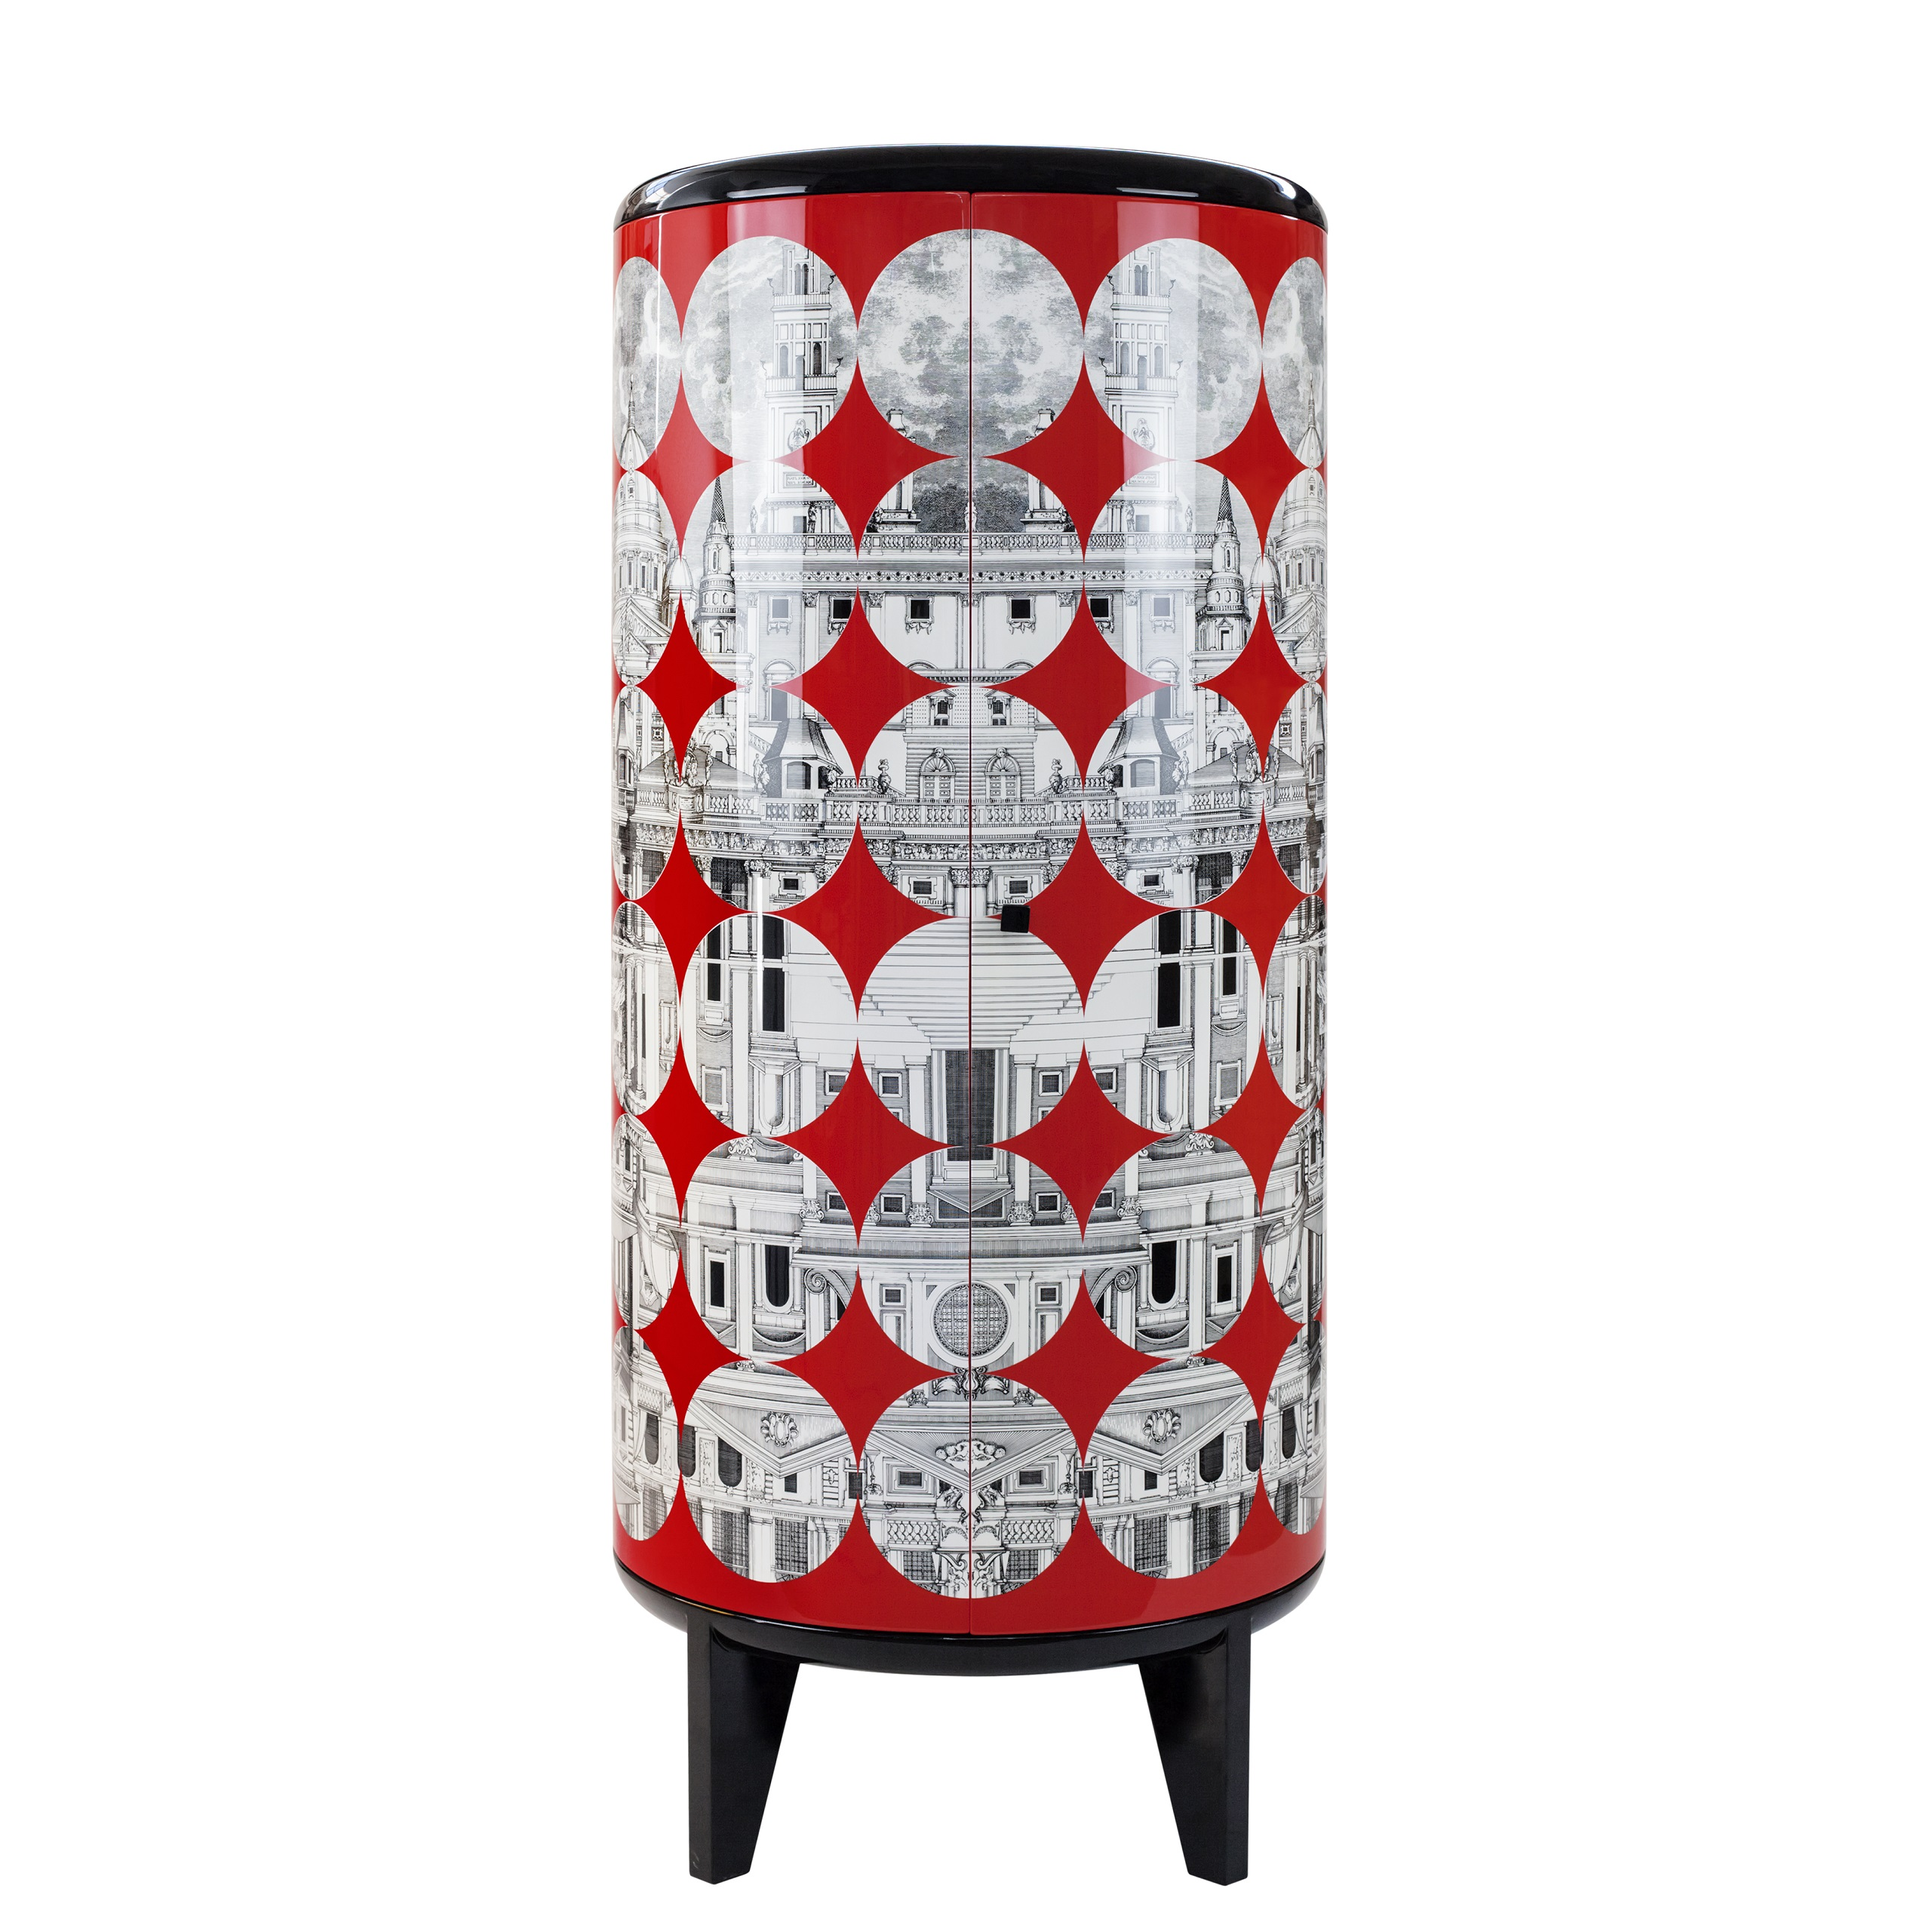 MILAN DESIGN WEEK: FORNASETTI - CILINDRO CITY